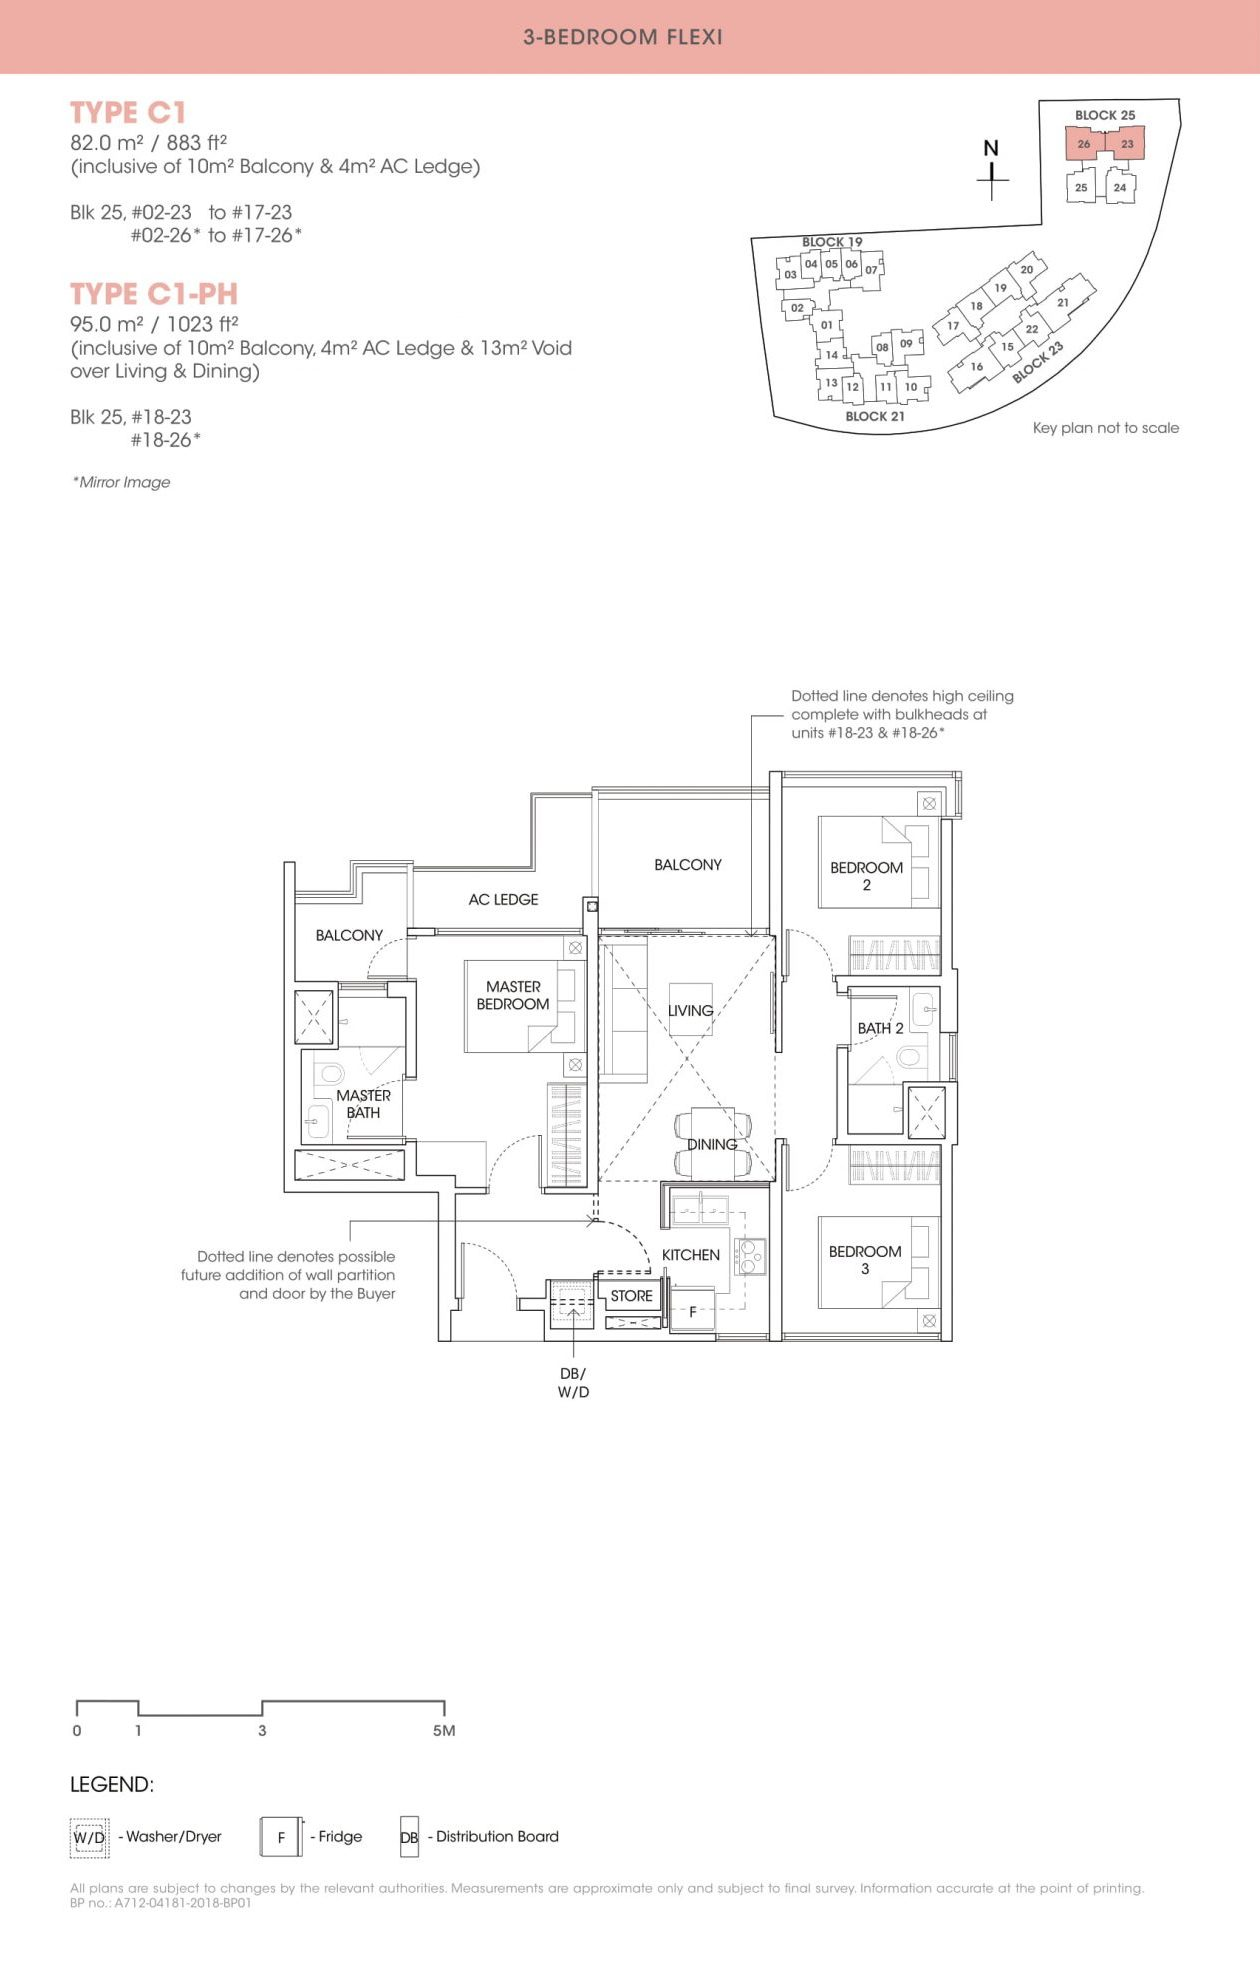 The Antares three-bedroom flexi floor plan